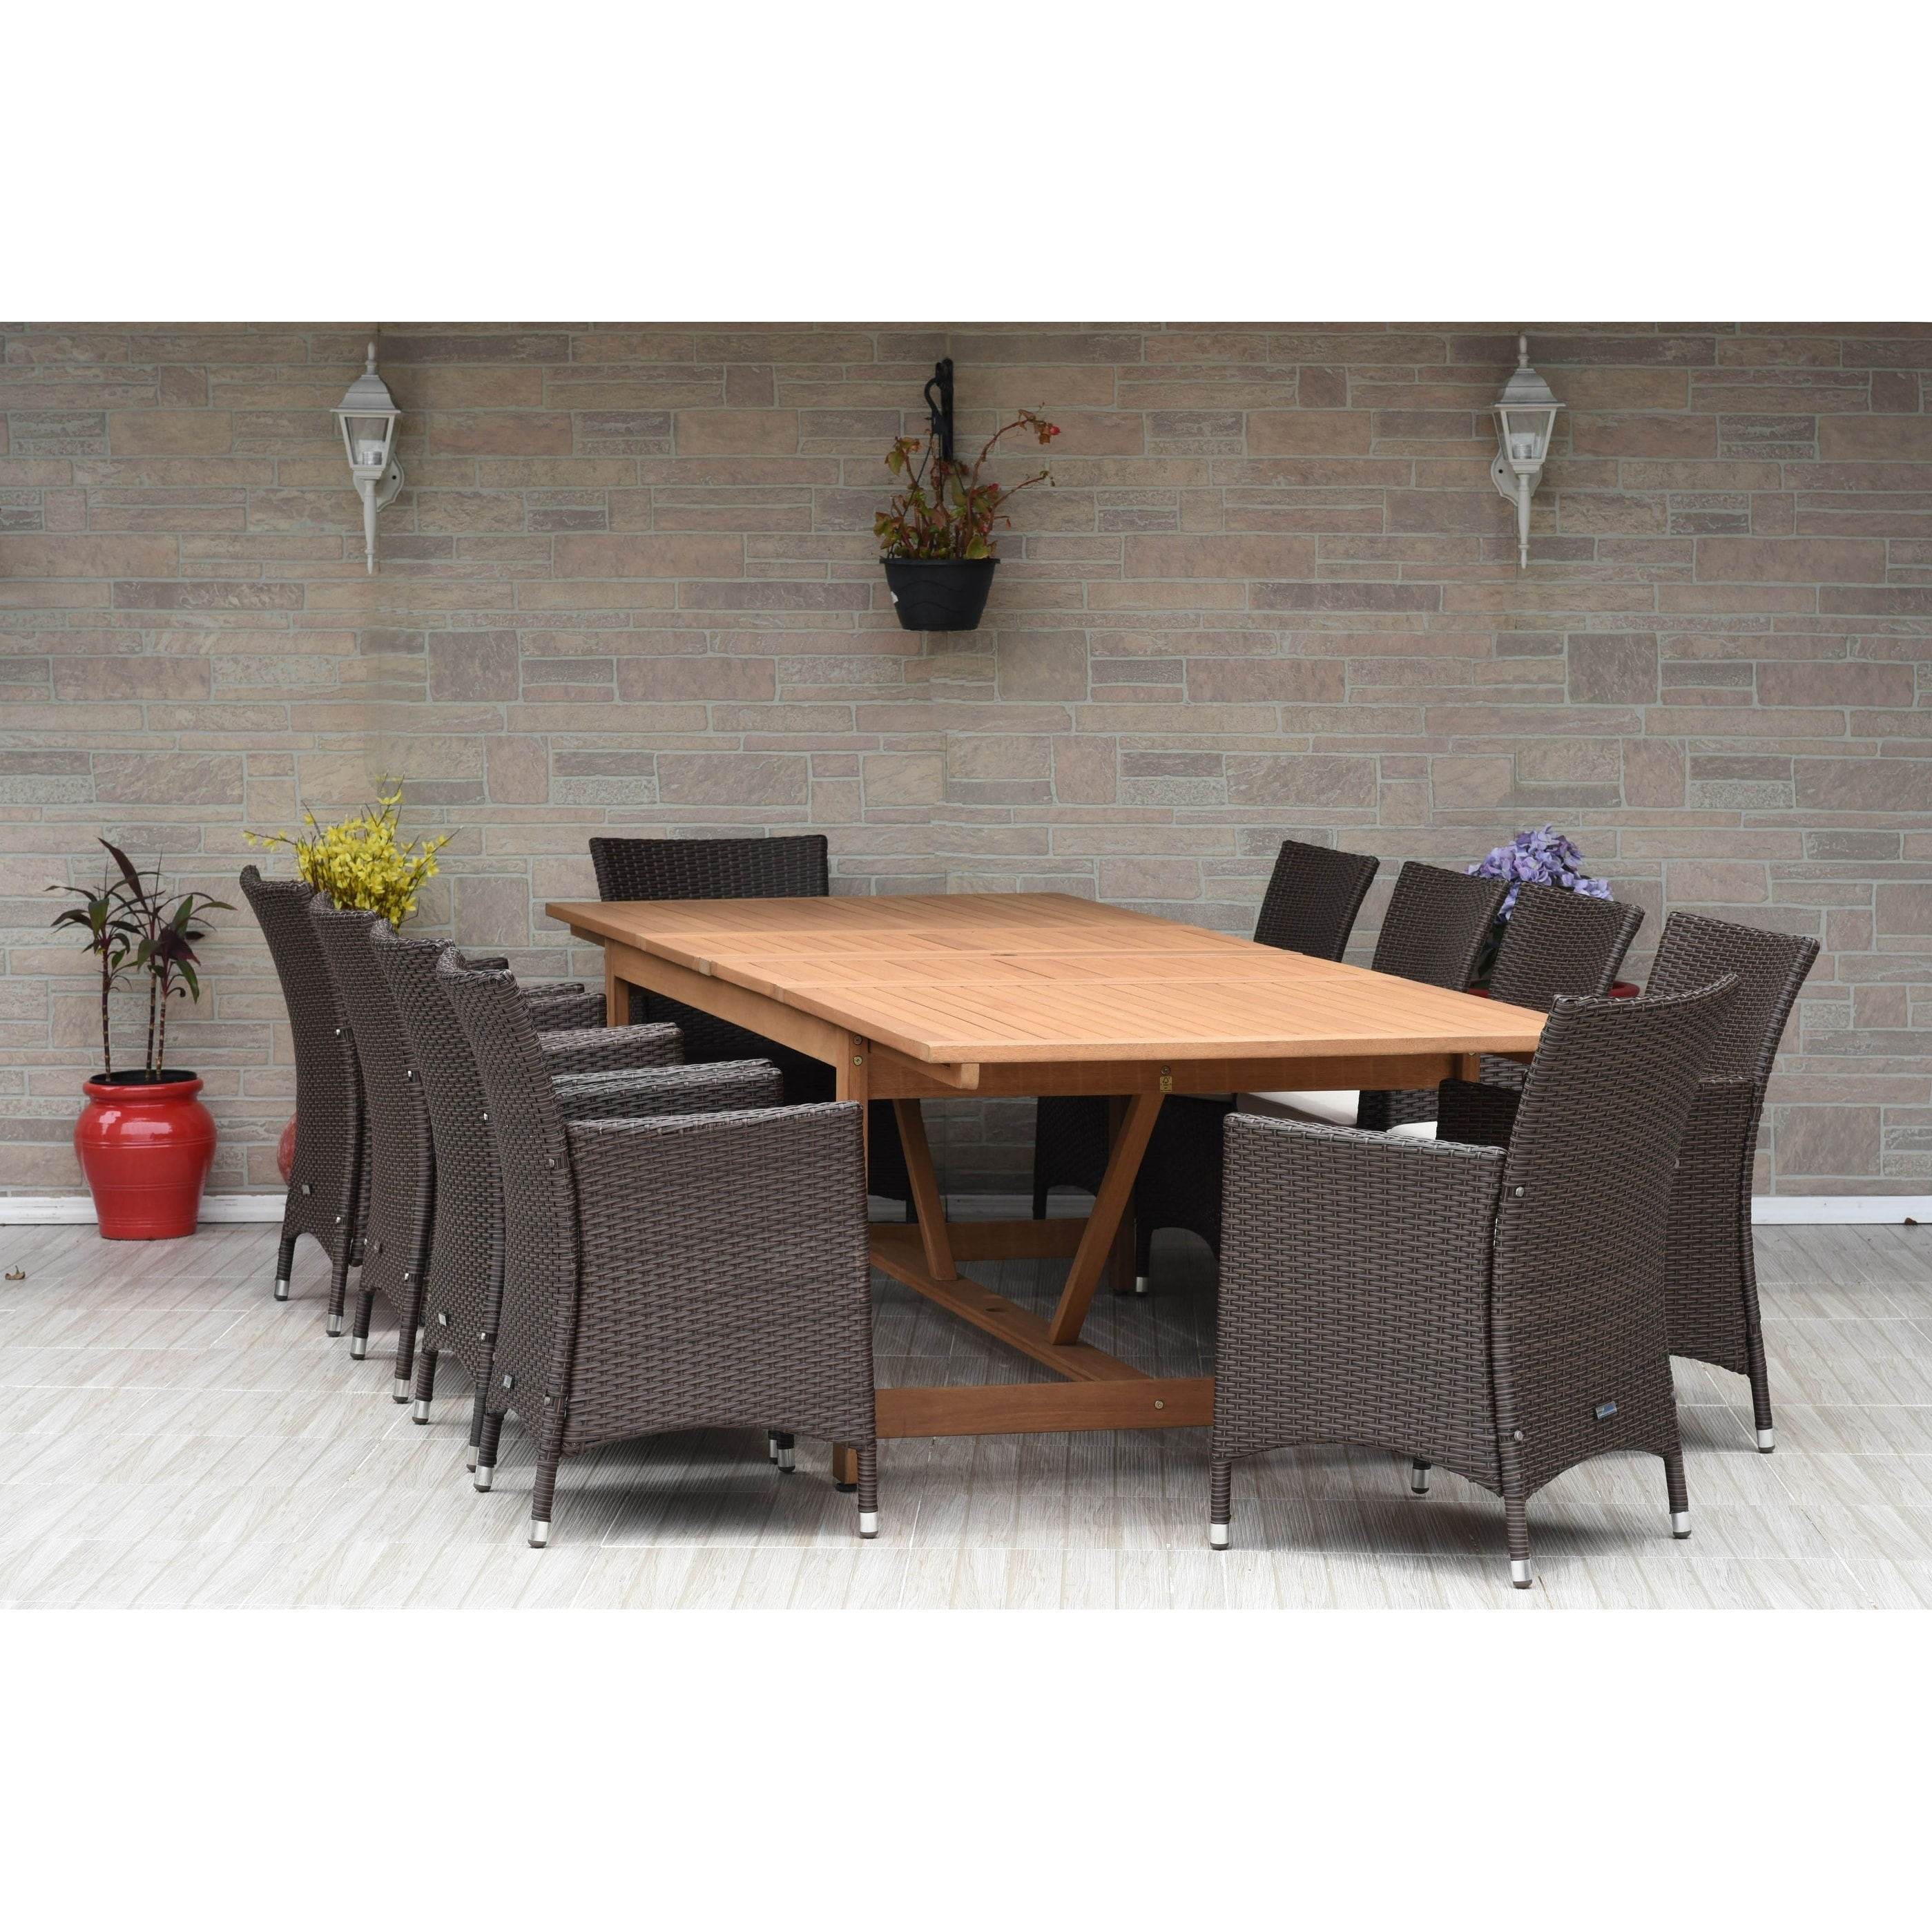 Amazonia Stacy 11-pc Wood & Wicker Double Extendable Dining Room Set 100% FSC Teak Wood by Overstock